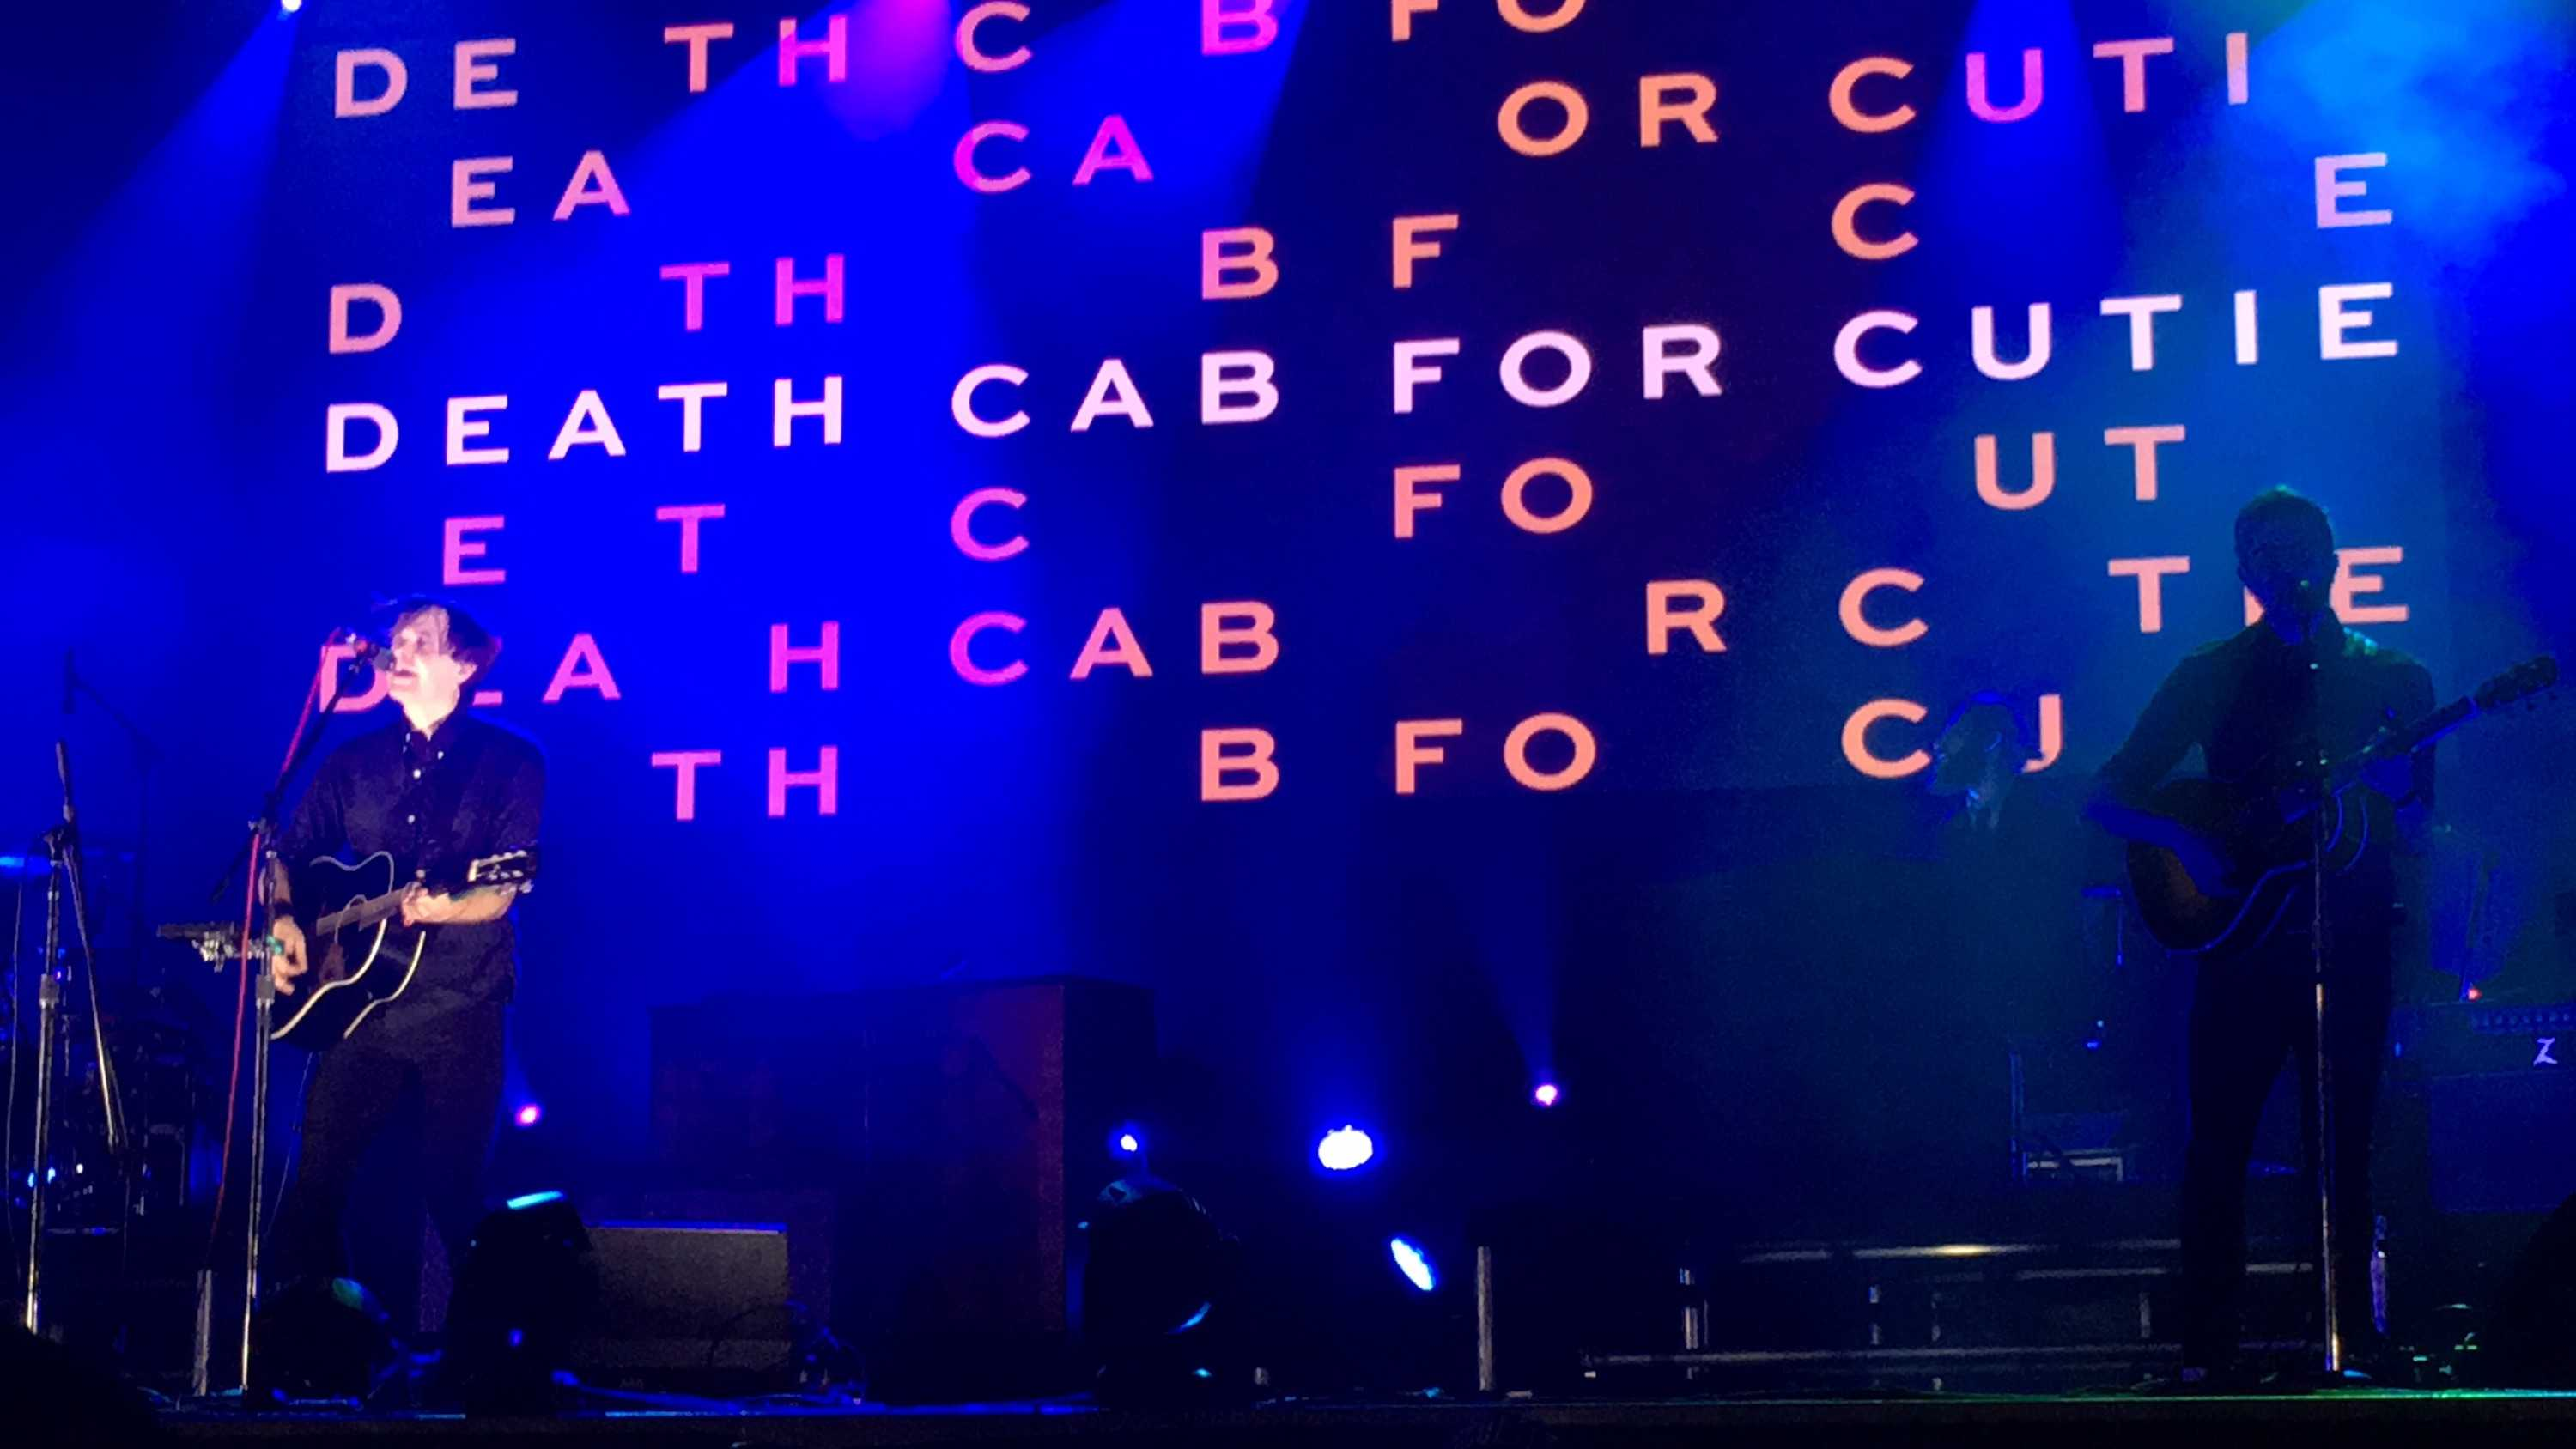 Death+Cab+For+Cutie+at+the+start+of+their+headline